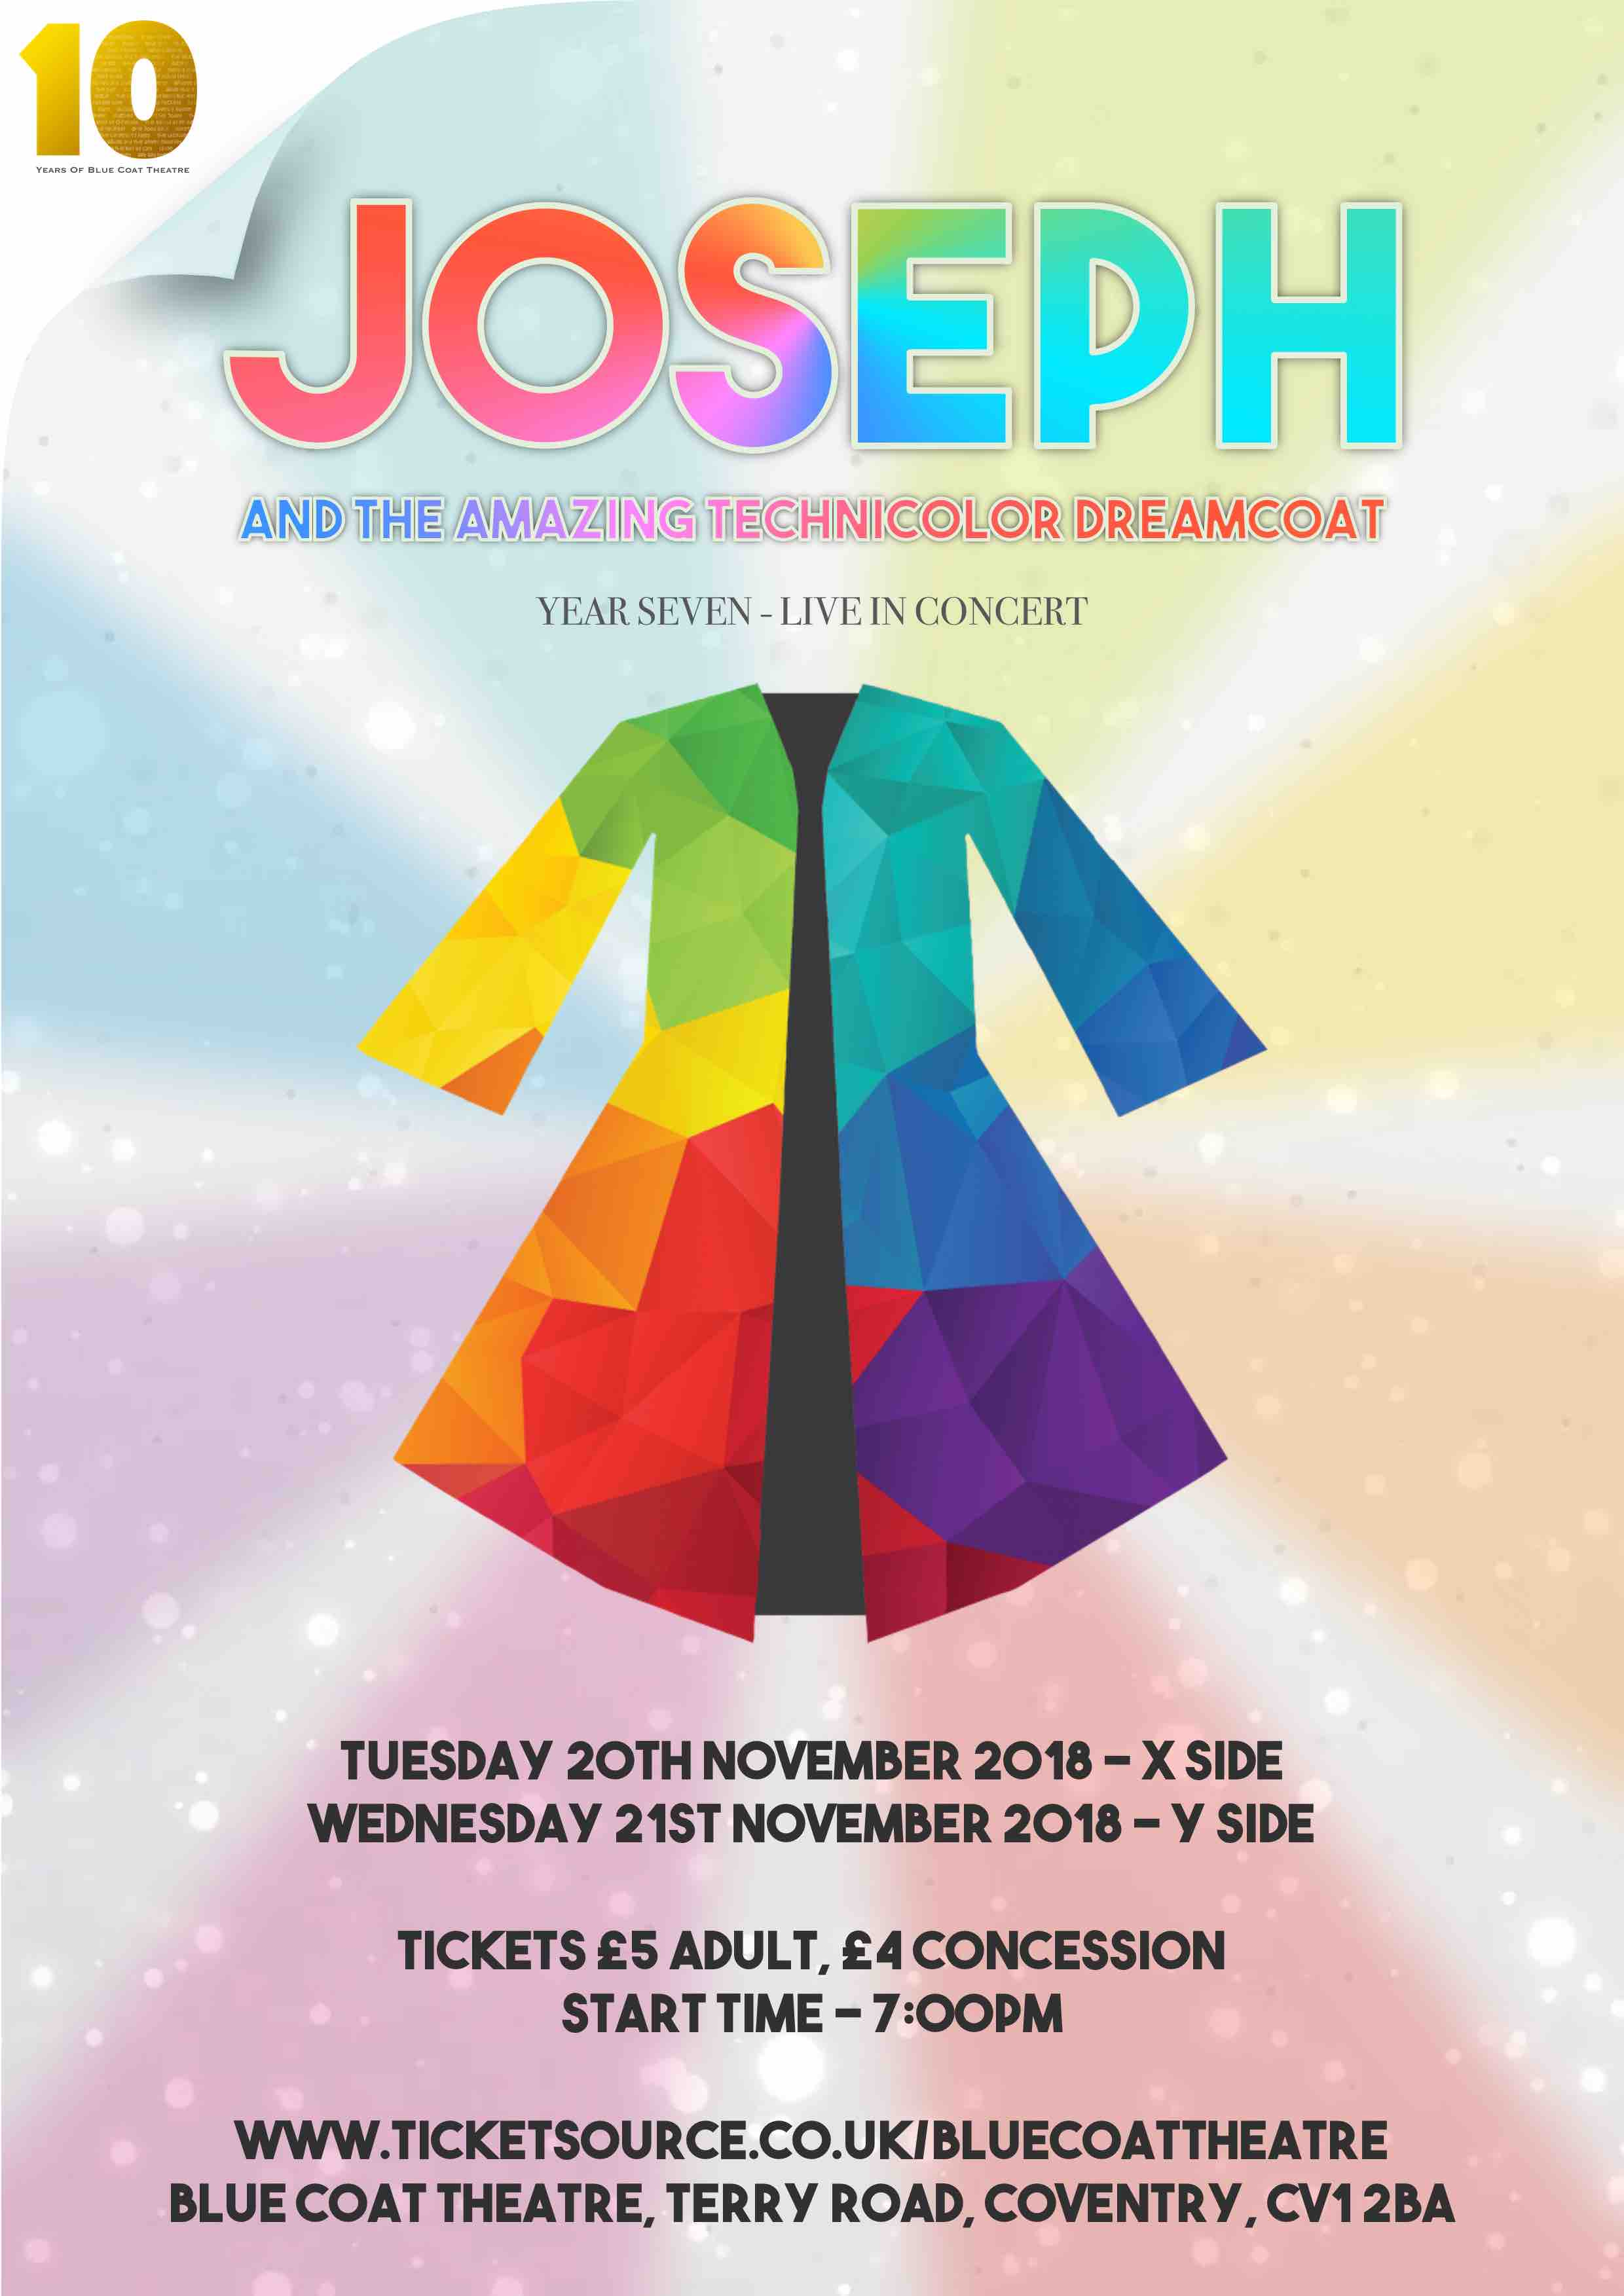 Joseph - In Concert at Blue Coat Theatre event tickets from